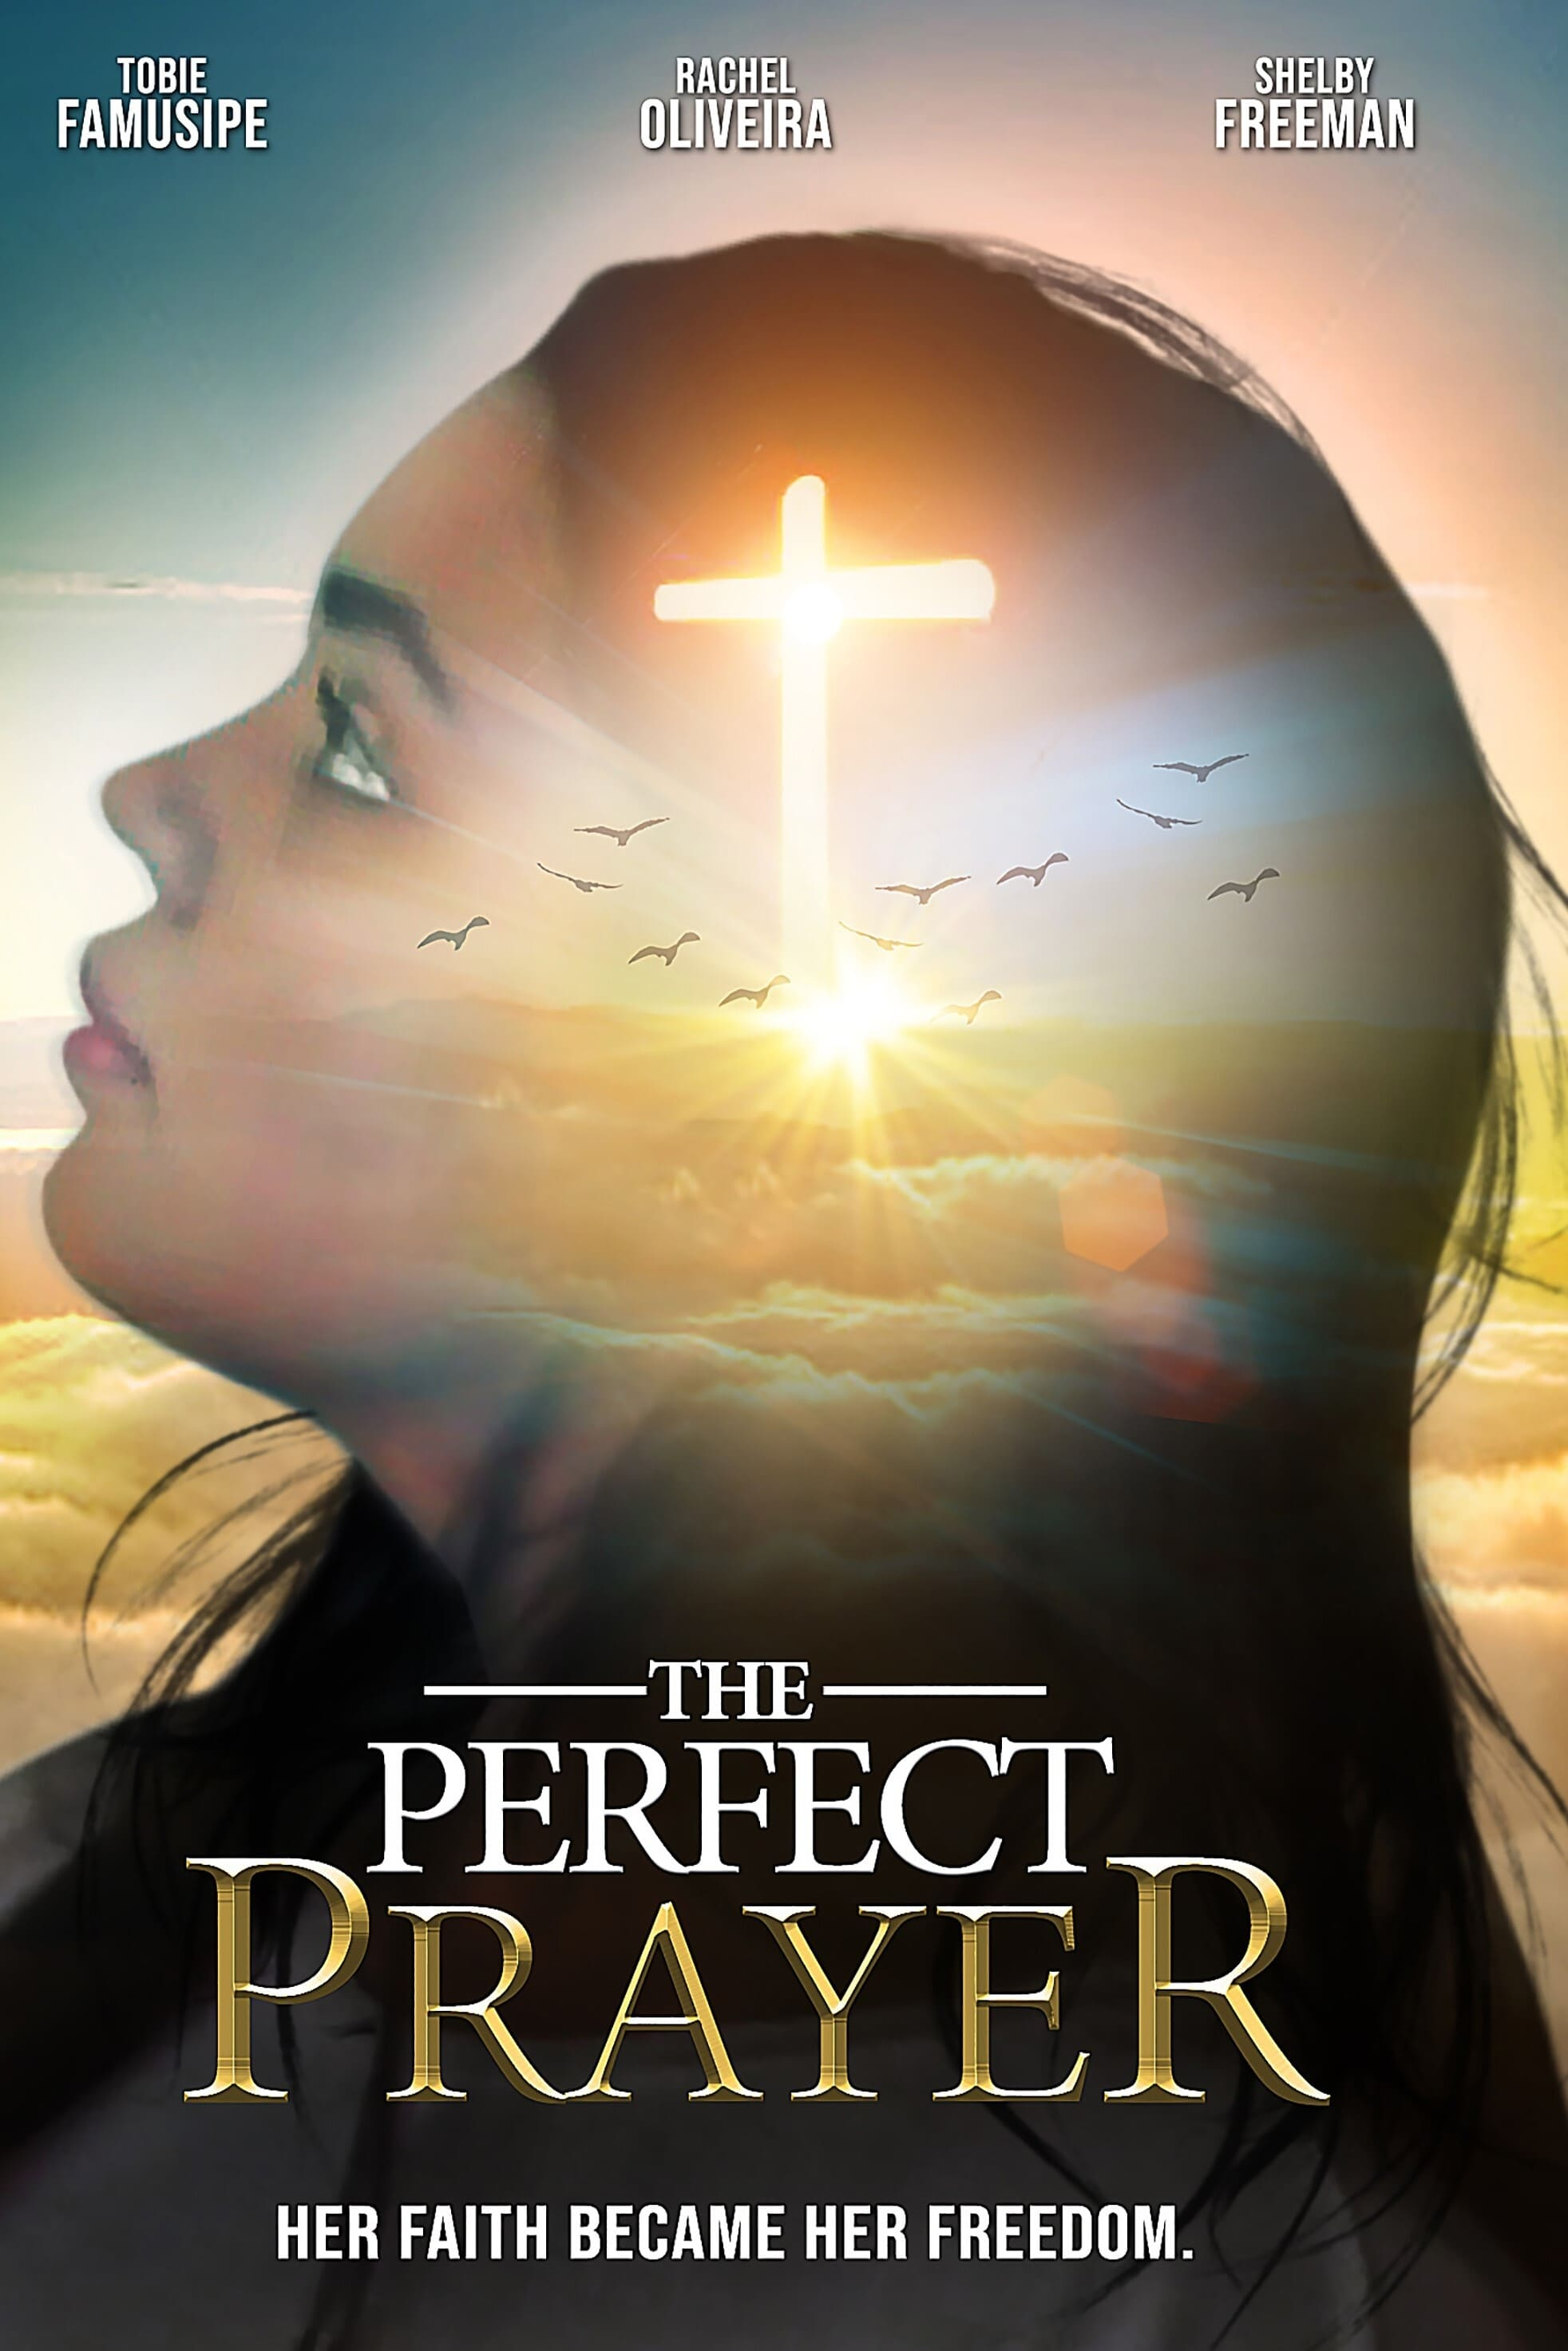 The Perfect Prayer: A Faith Based Film on FREECABLE TV